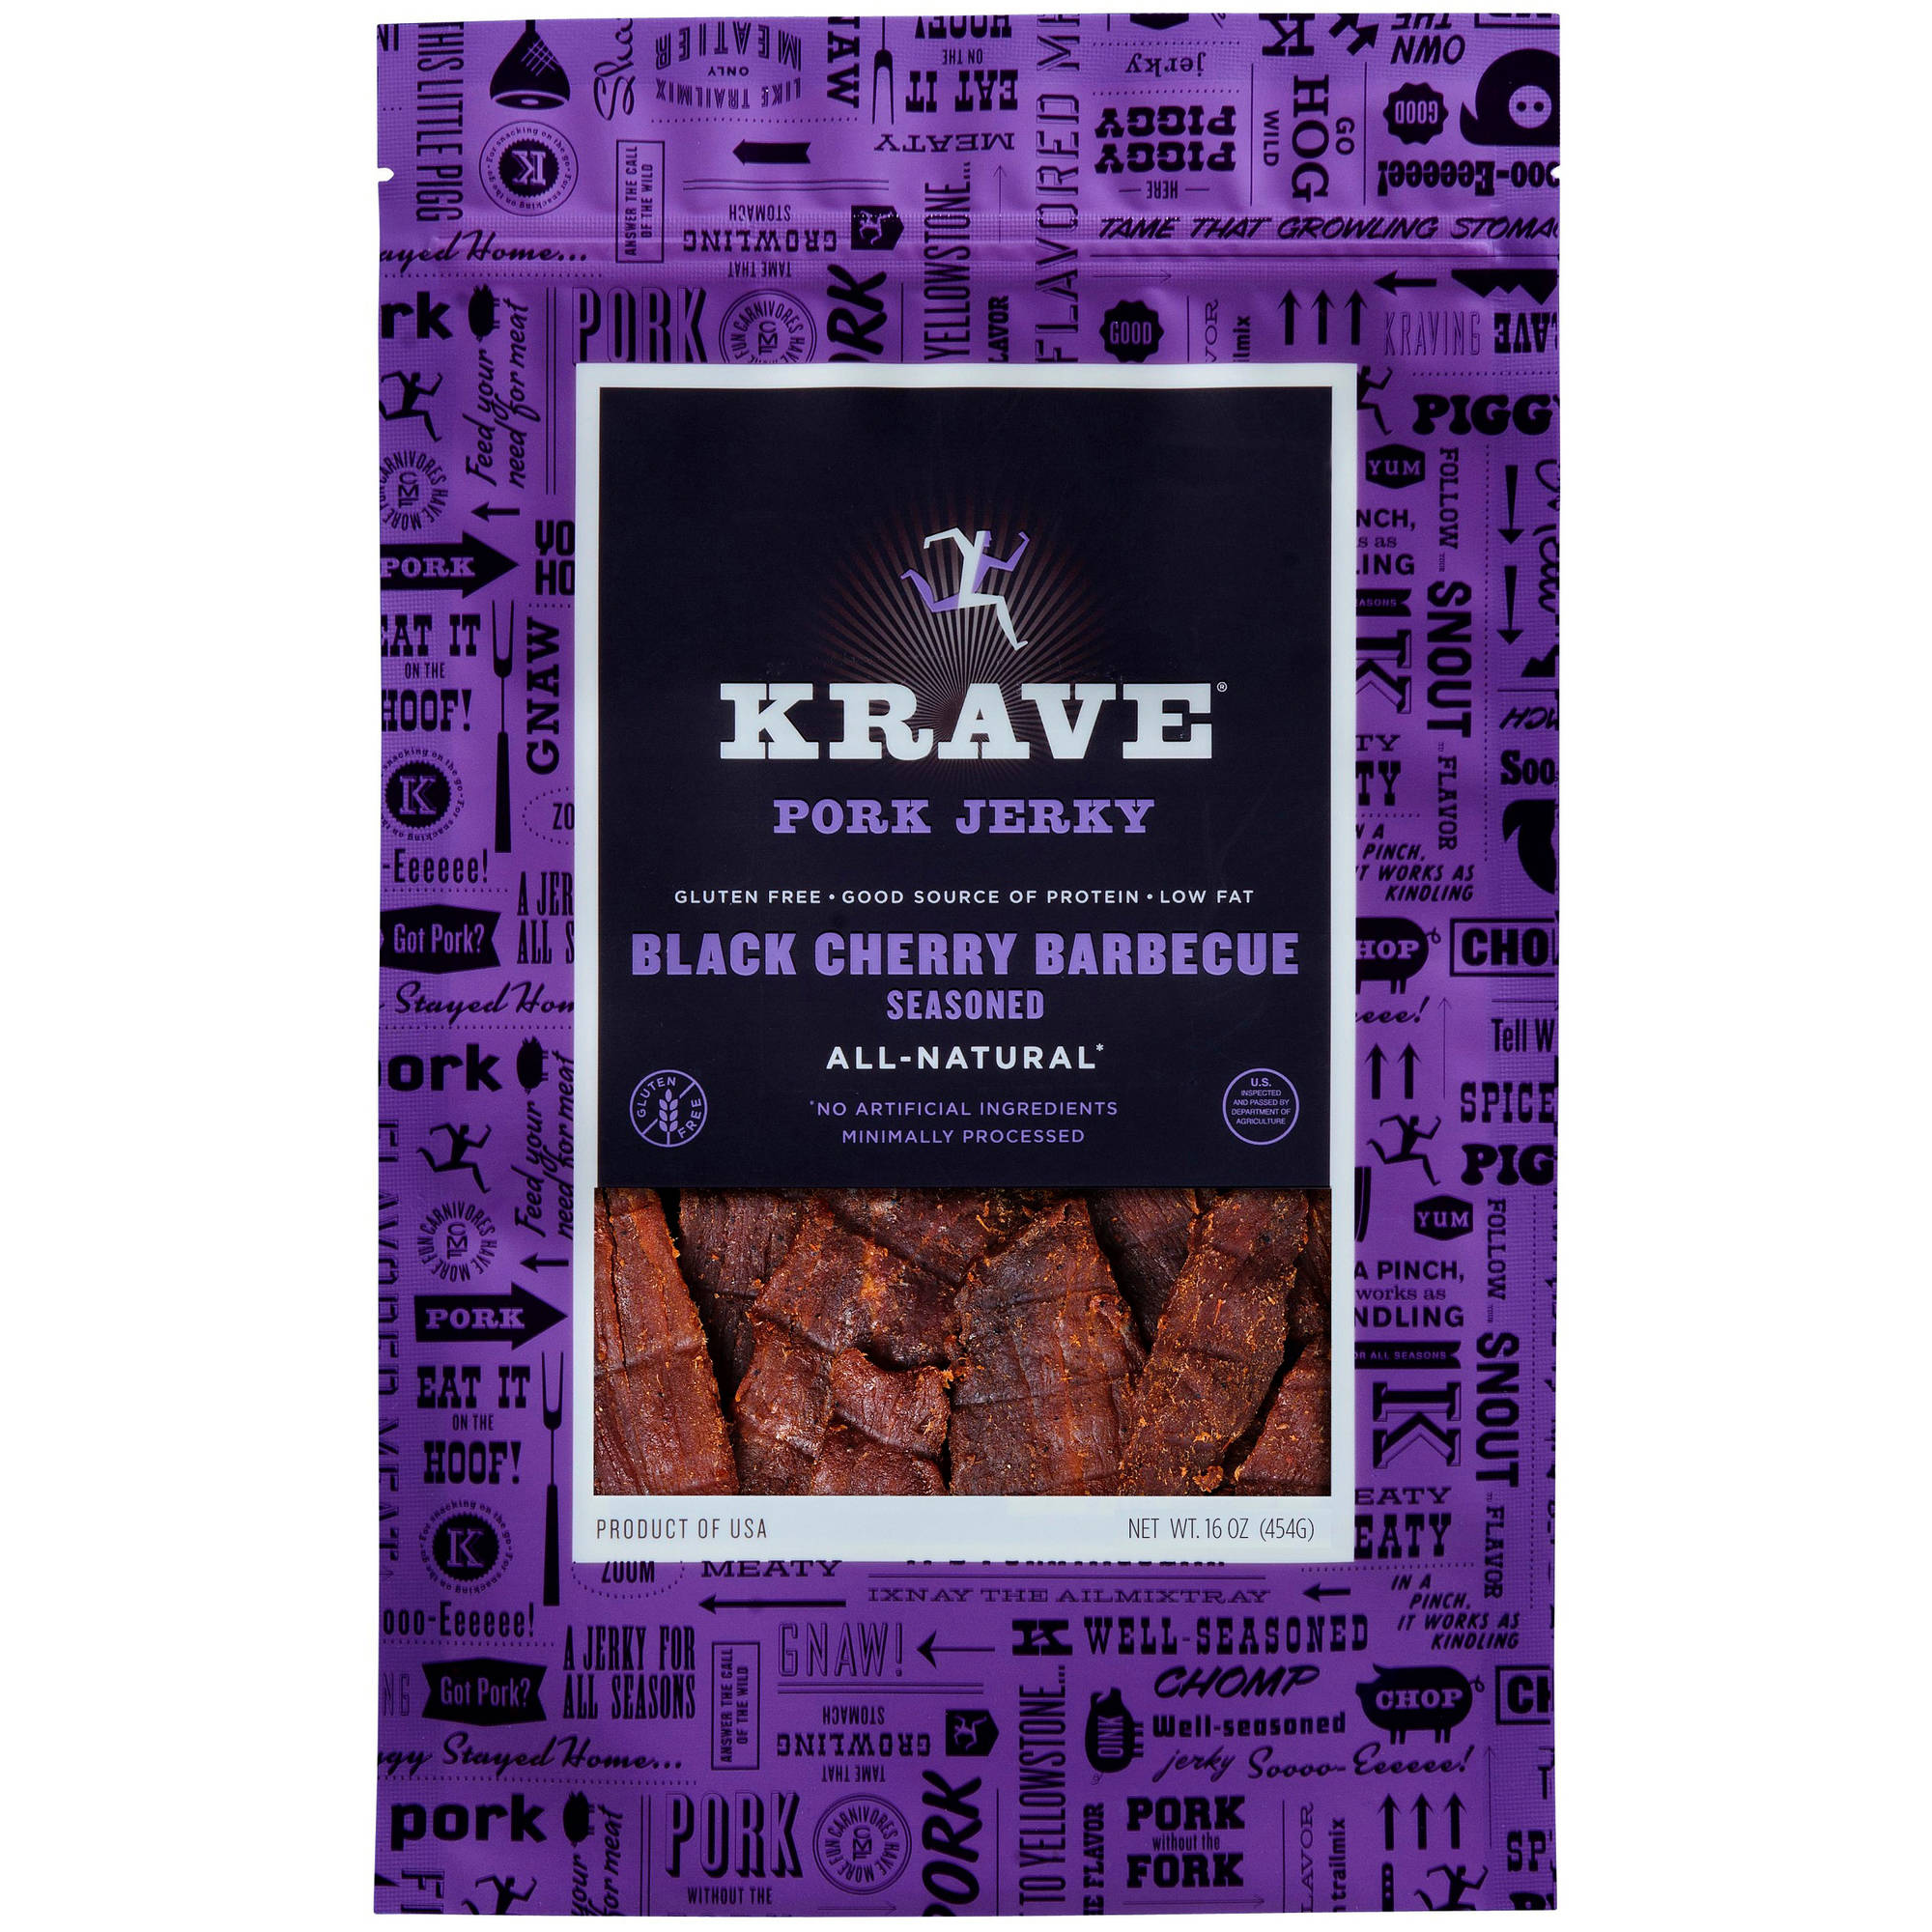 Krave Black Cherry Barbecue Seasoned Pork Jerky, 16 oz